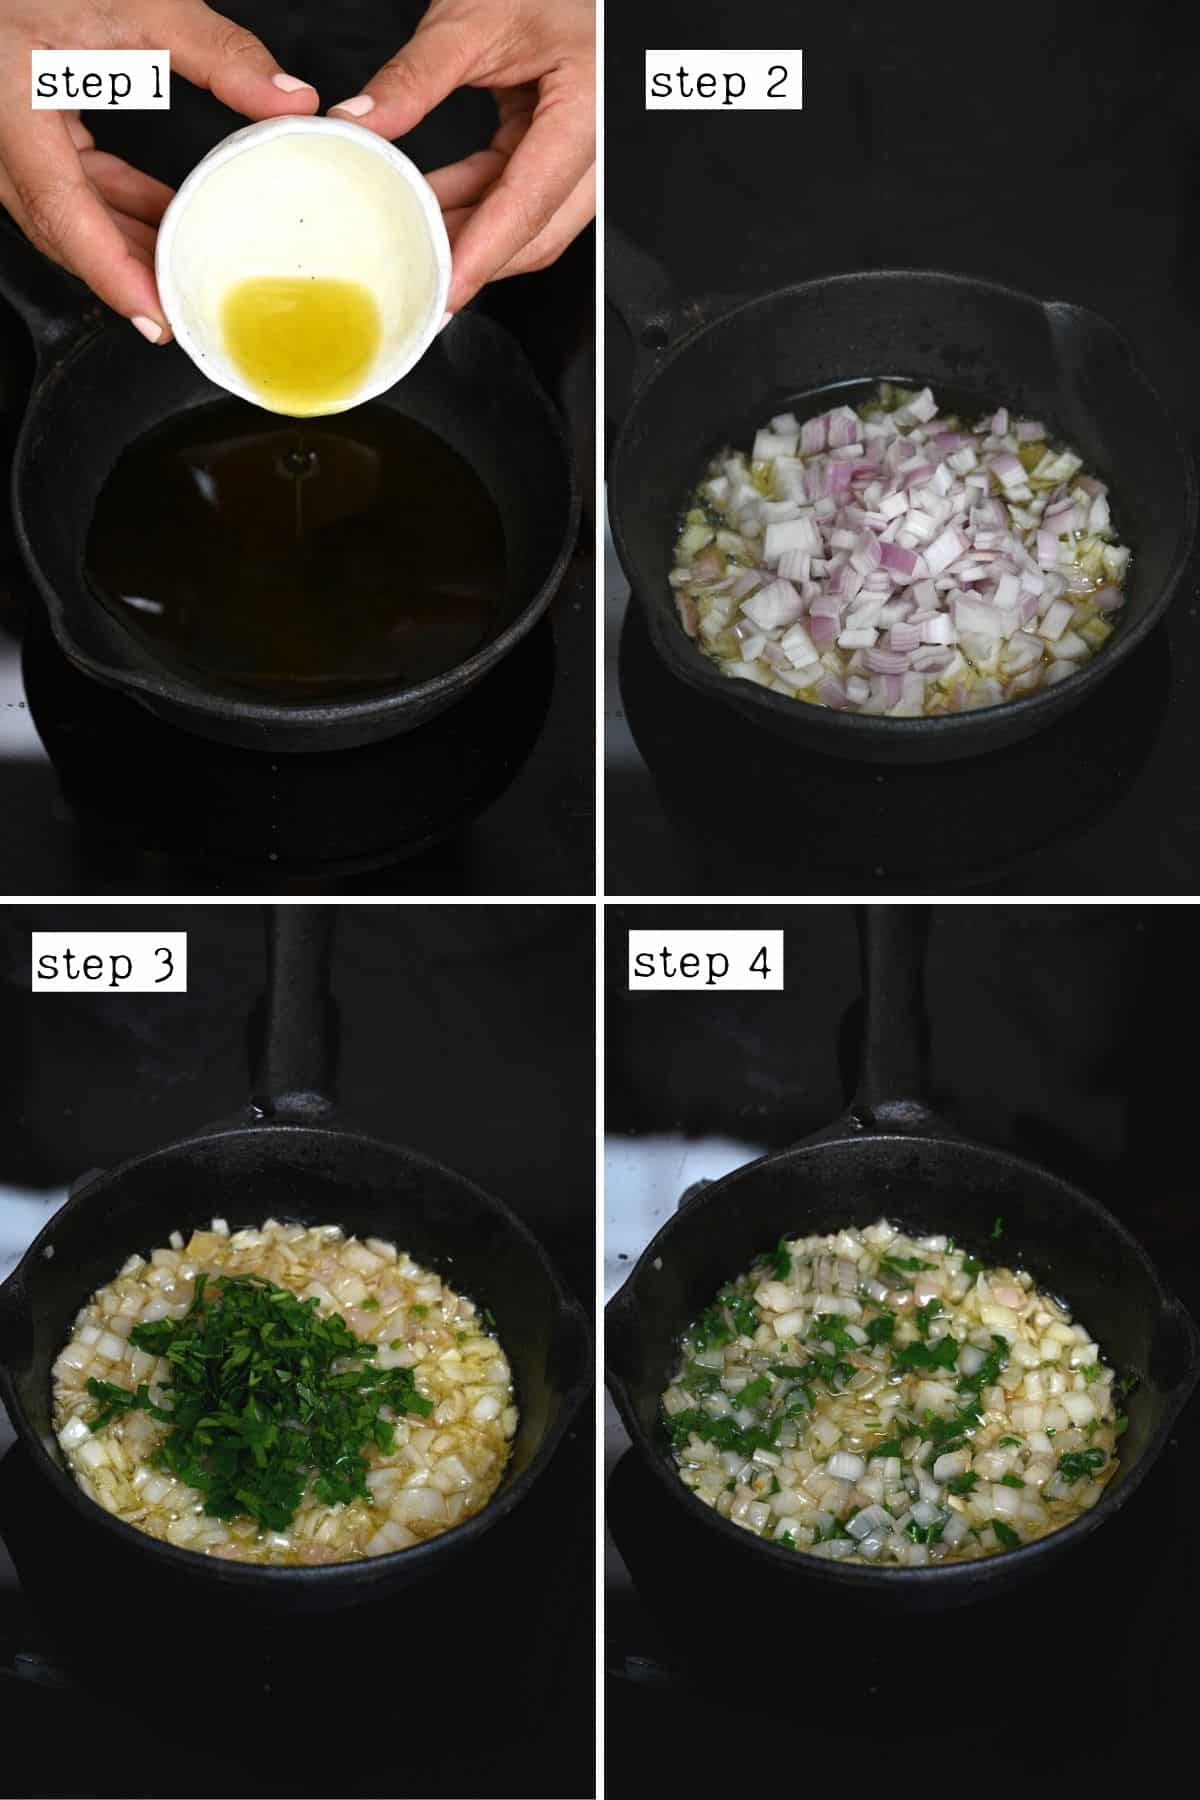 Steps for cooking onion and parsley